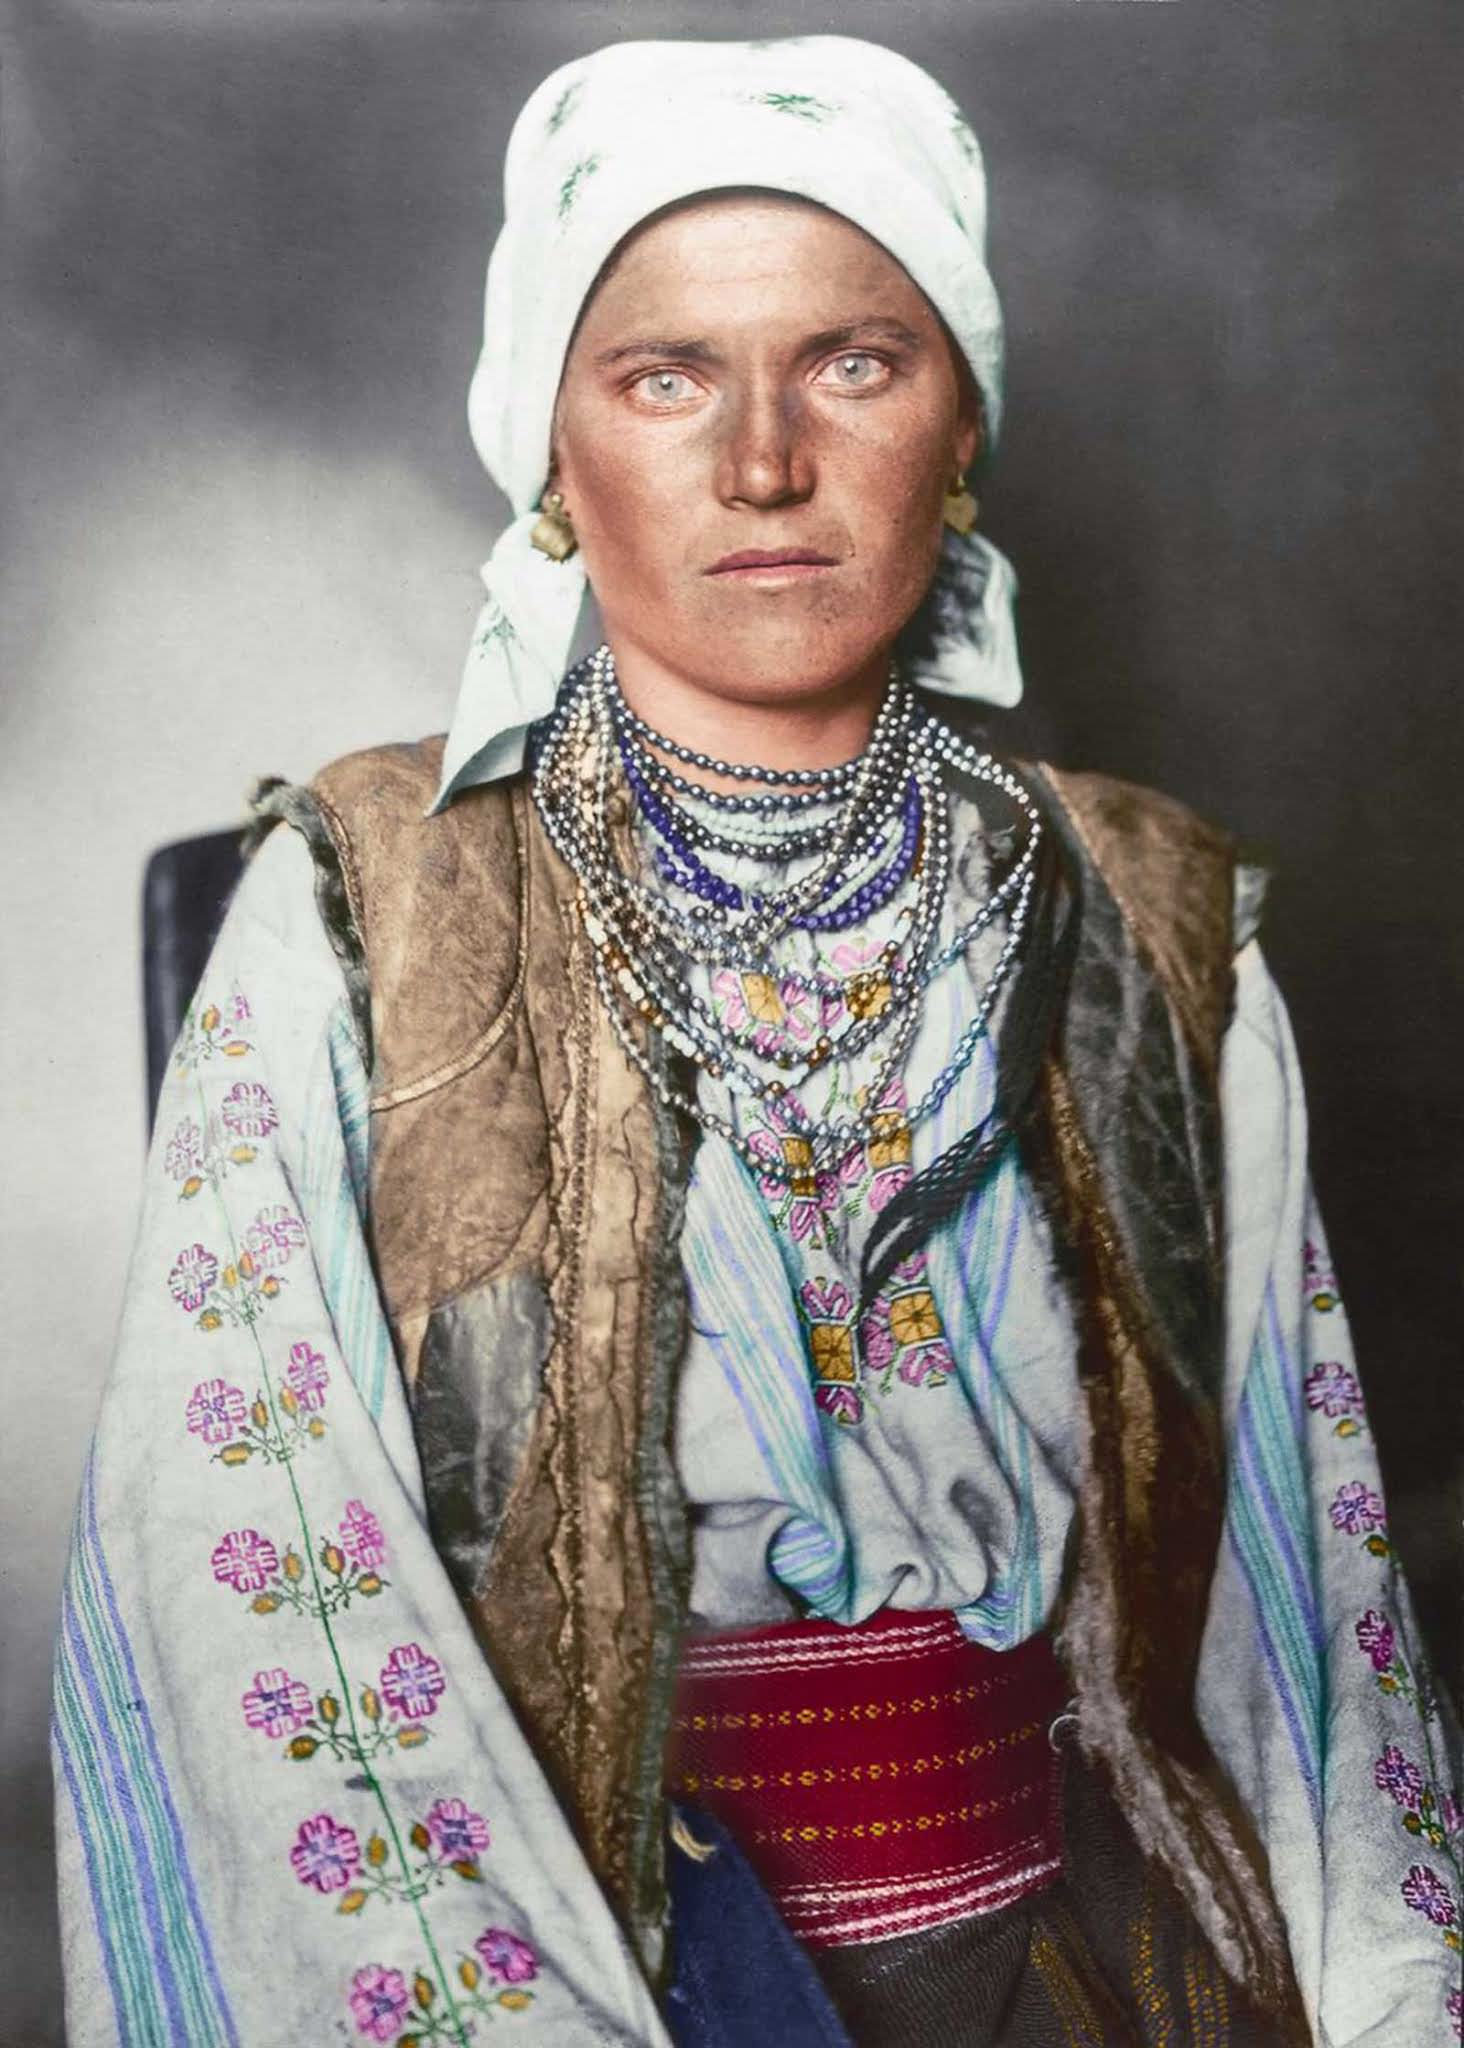 """Ruthenian woman."""" Historically inhabiting the kingdom of the Rus ranging from parts of modern-day Slavic-speaking countries, this example of Ruthenian traditional dress consisted of a shirt and underskirt made from linen which was embroidered with traditional floral-based patterns. The sleeveless ja"""